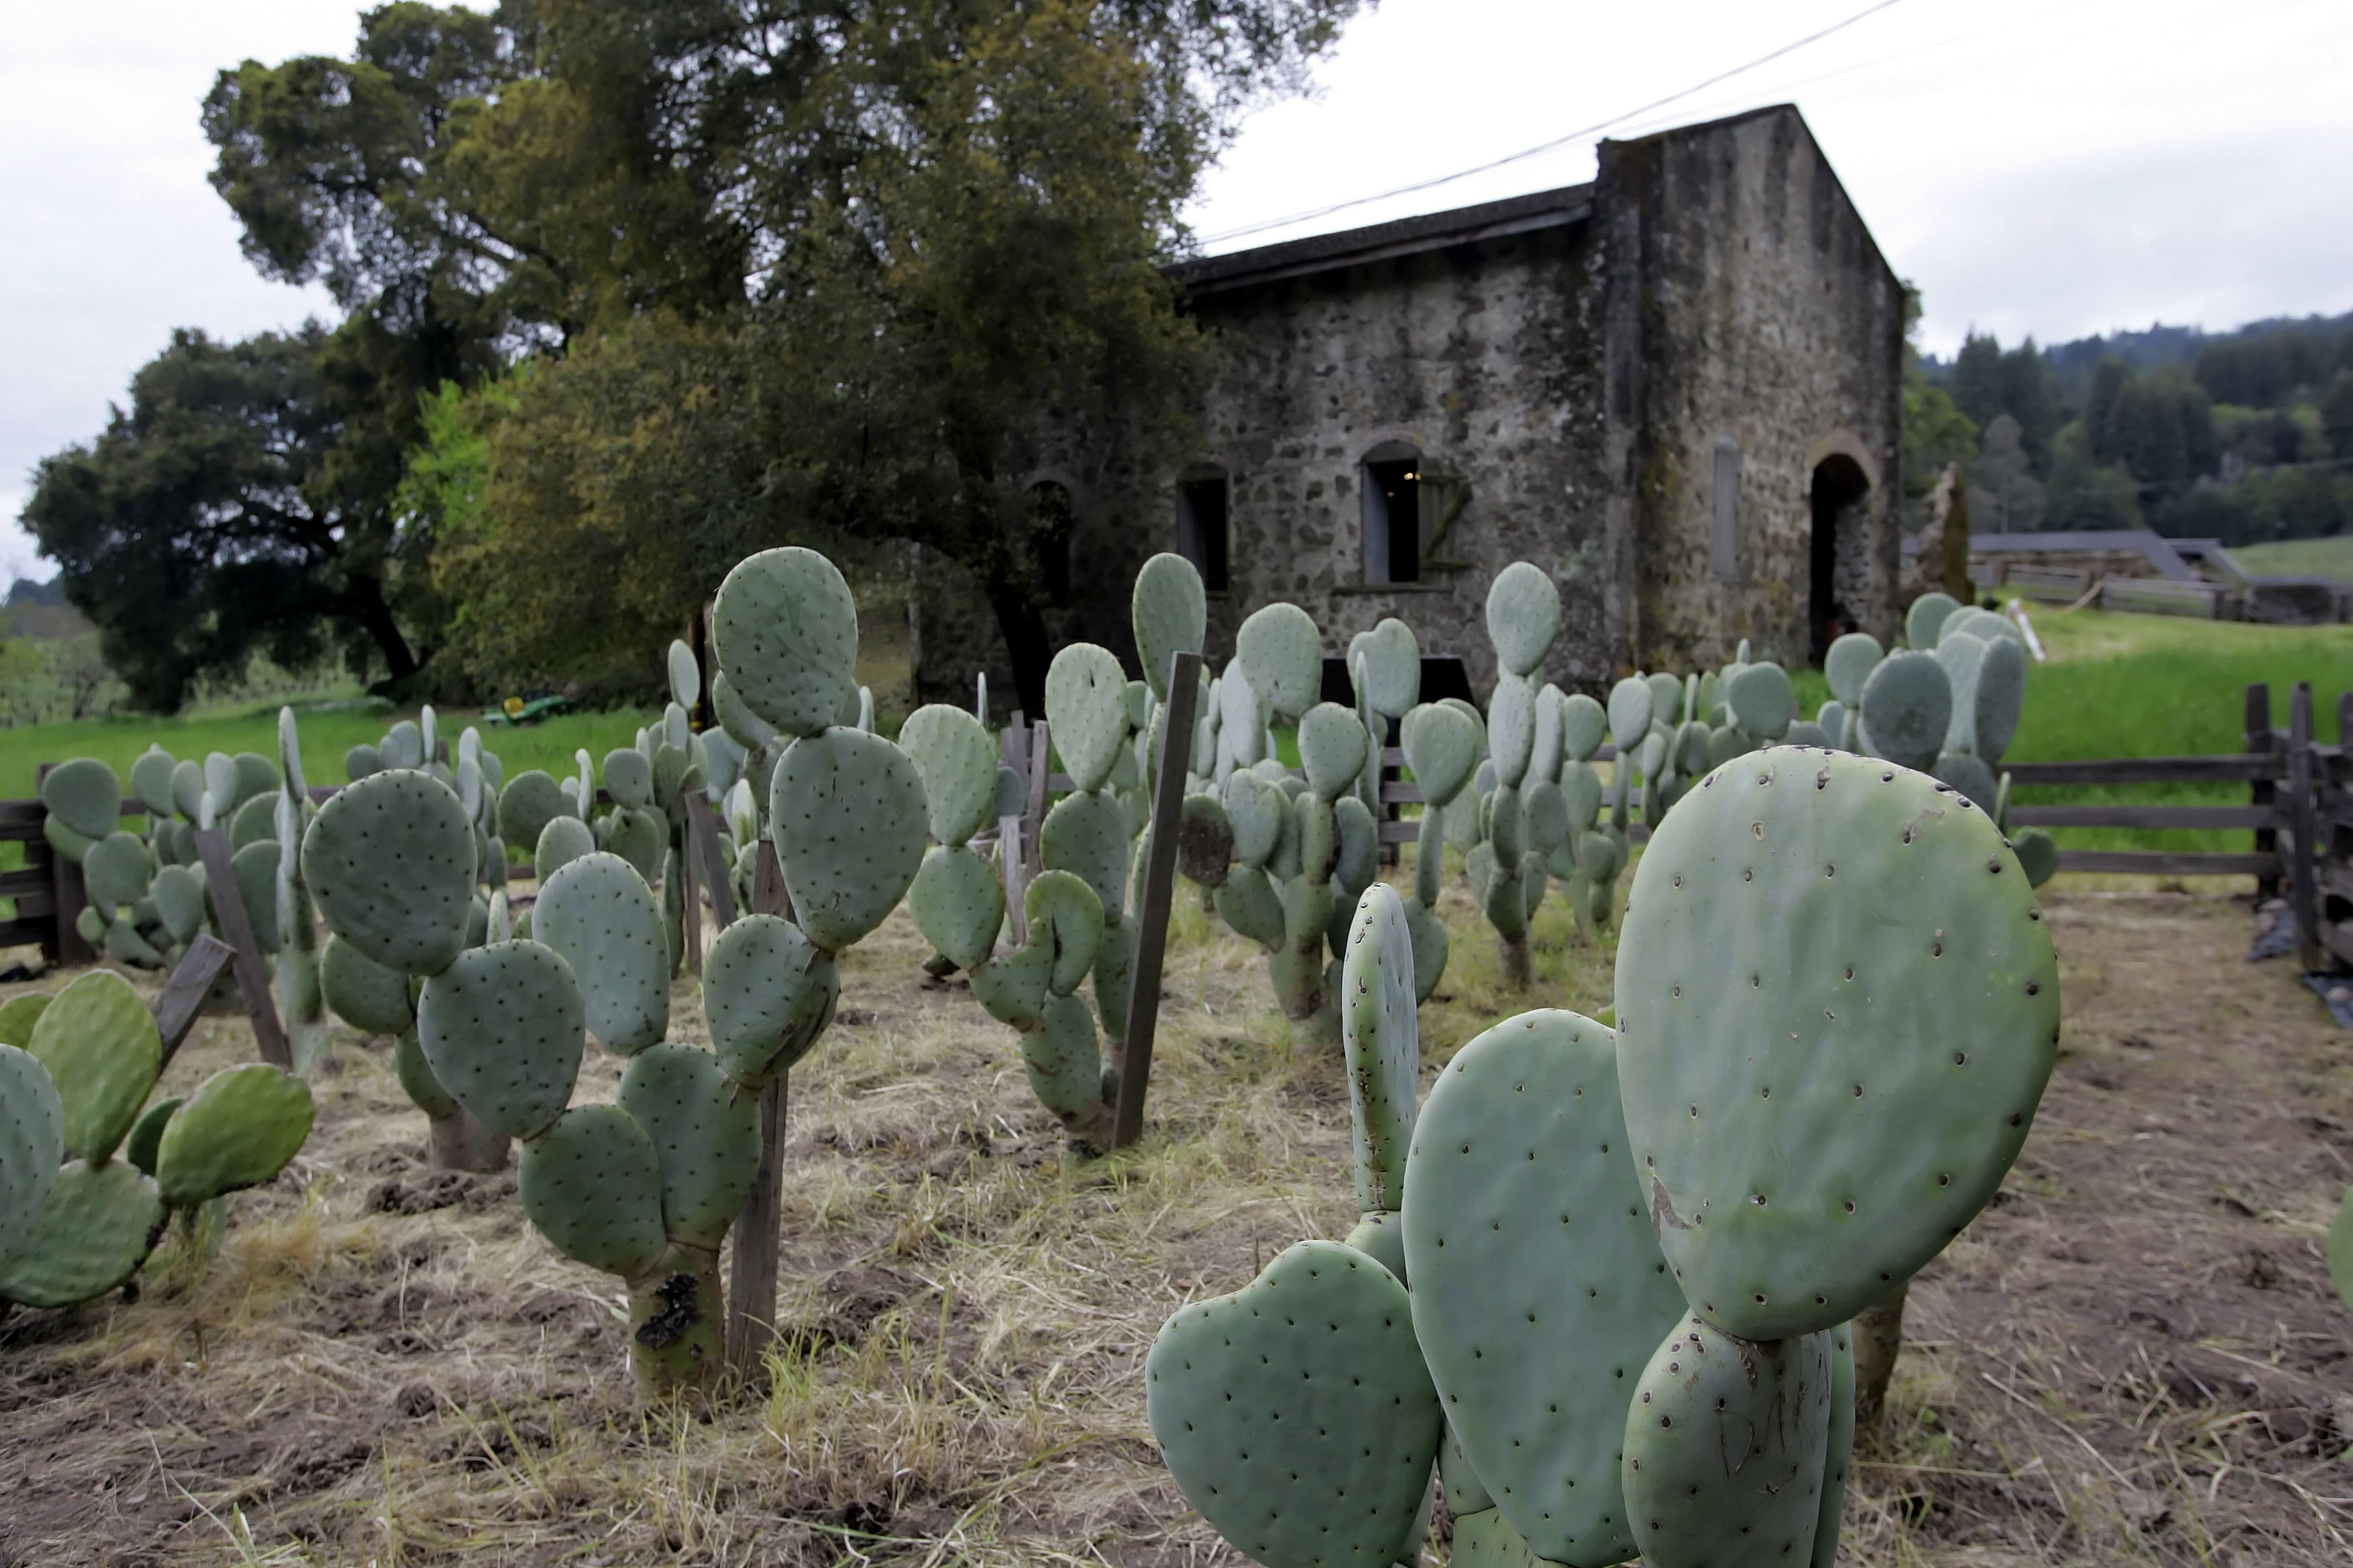 A group of spineless cactus are shown outside a distillery by Jack London's cottage at Jack London State Park in Glen Ellen, Calif., April 25, 2006.